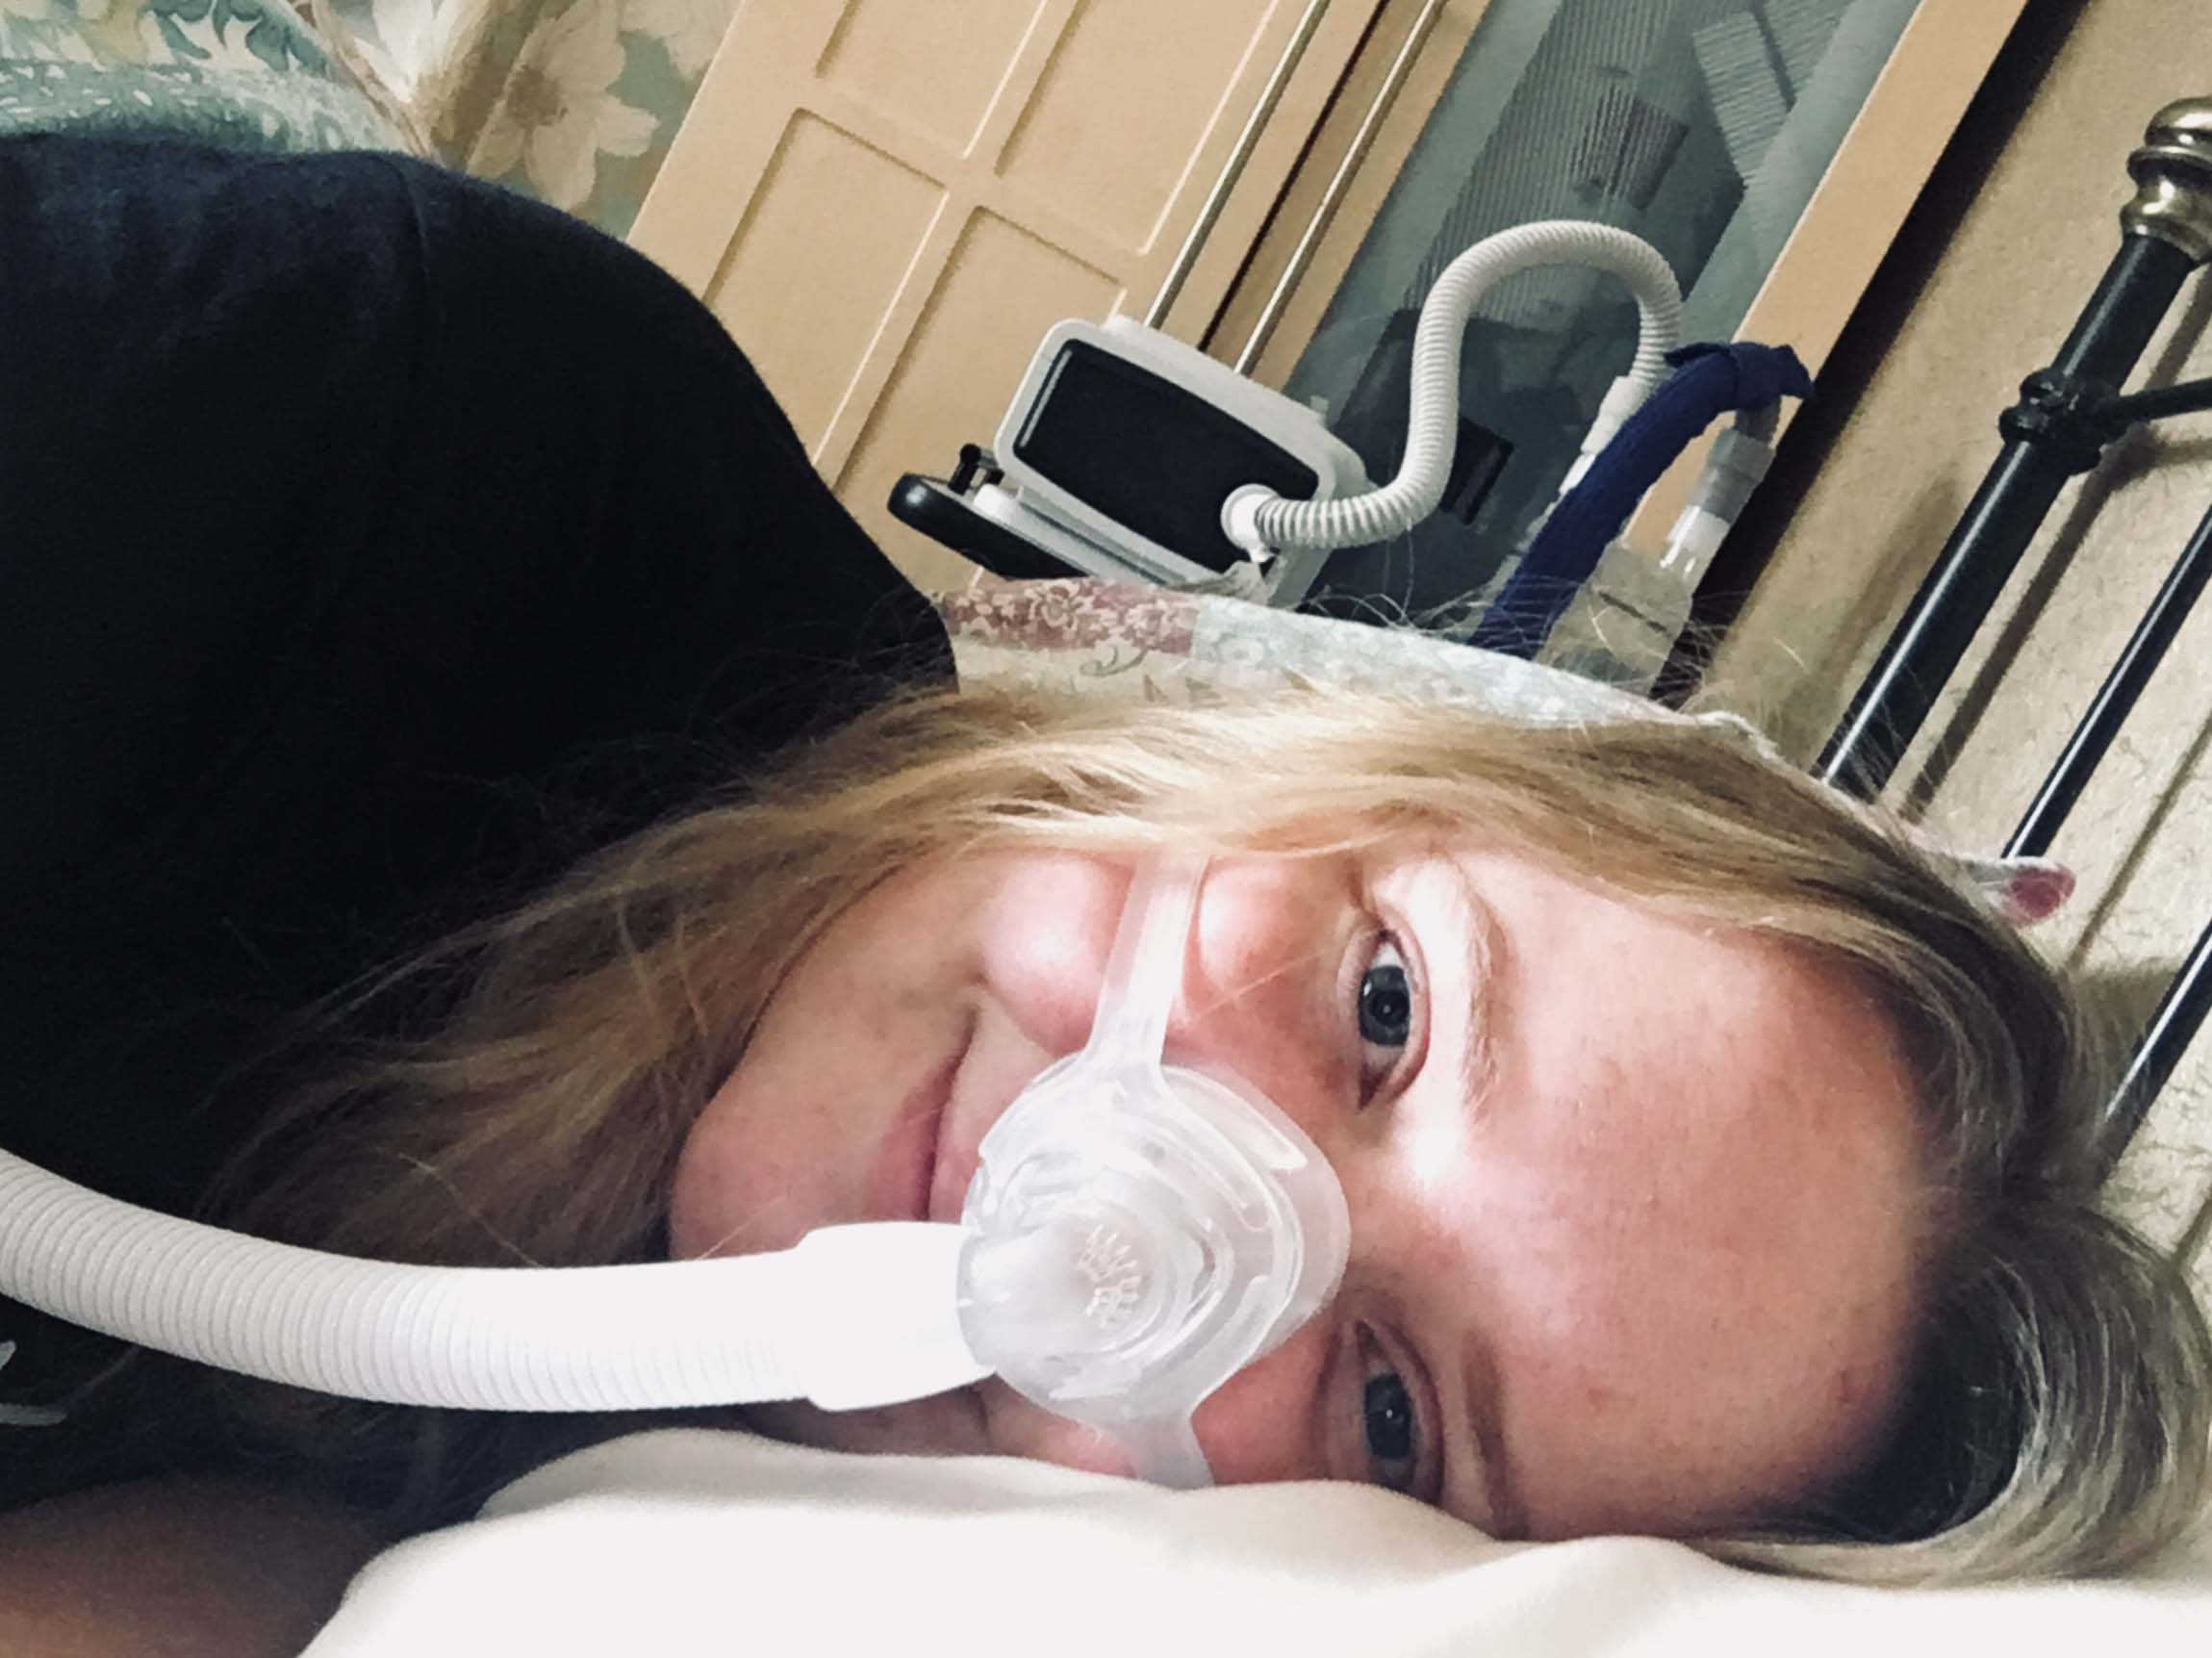 Laura Beattie smiling, wearing an oxygen mask